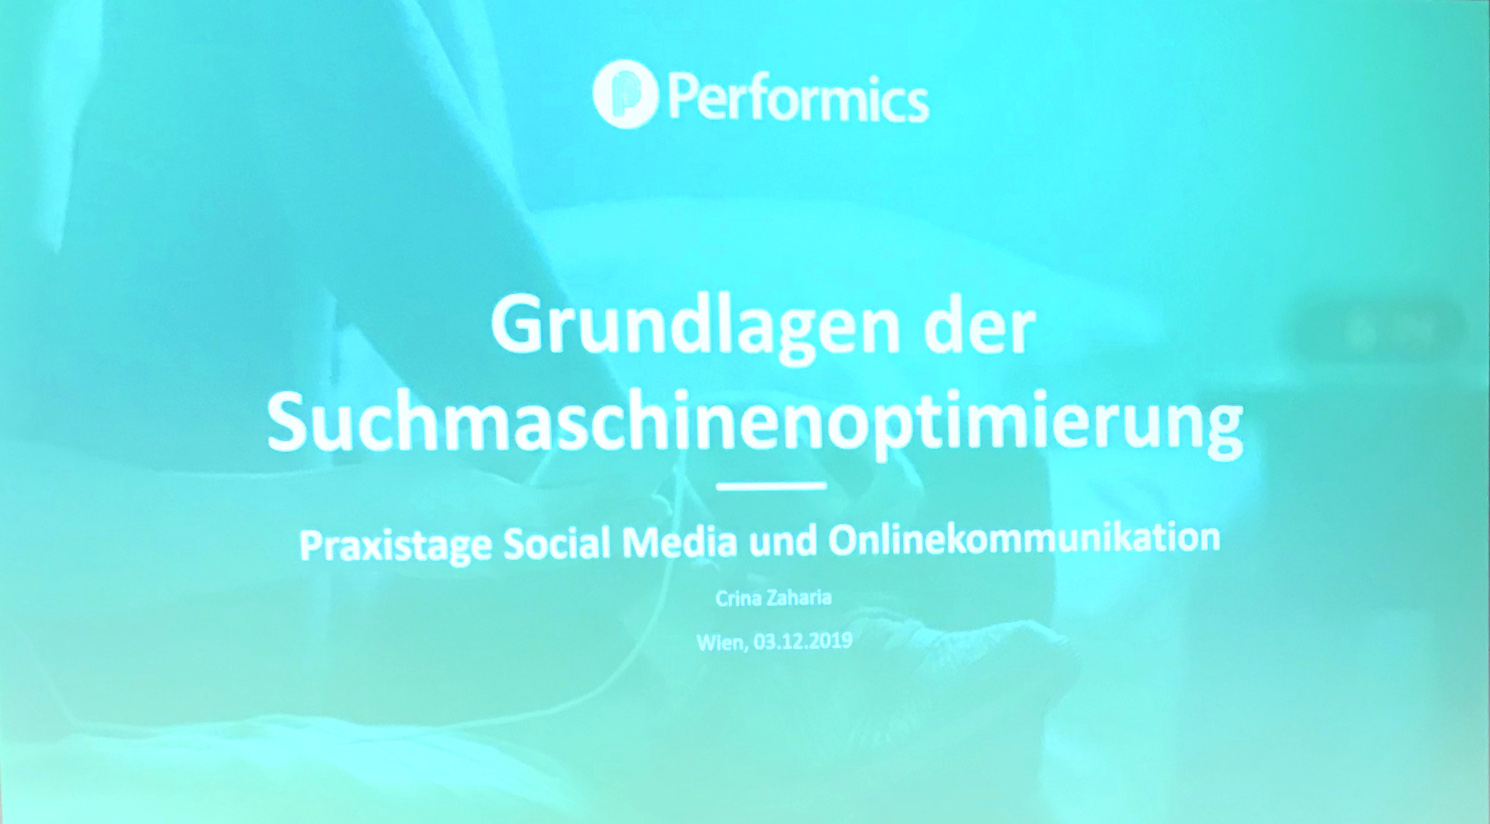 All about SEO basics: Performics bei den SCM Praxistagen